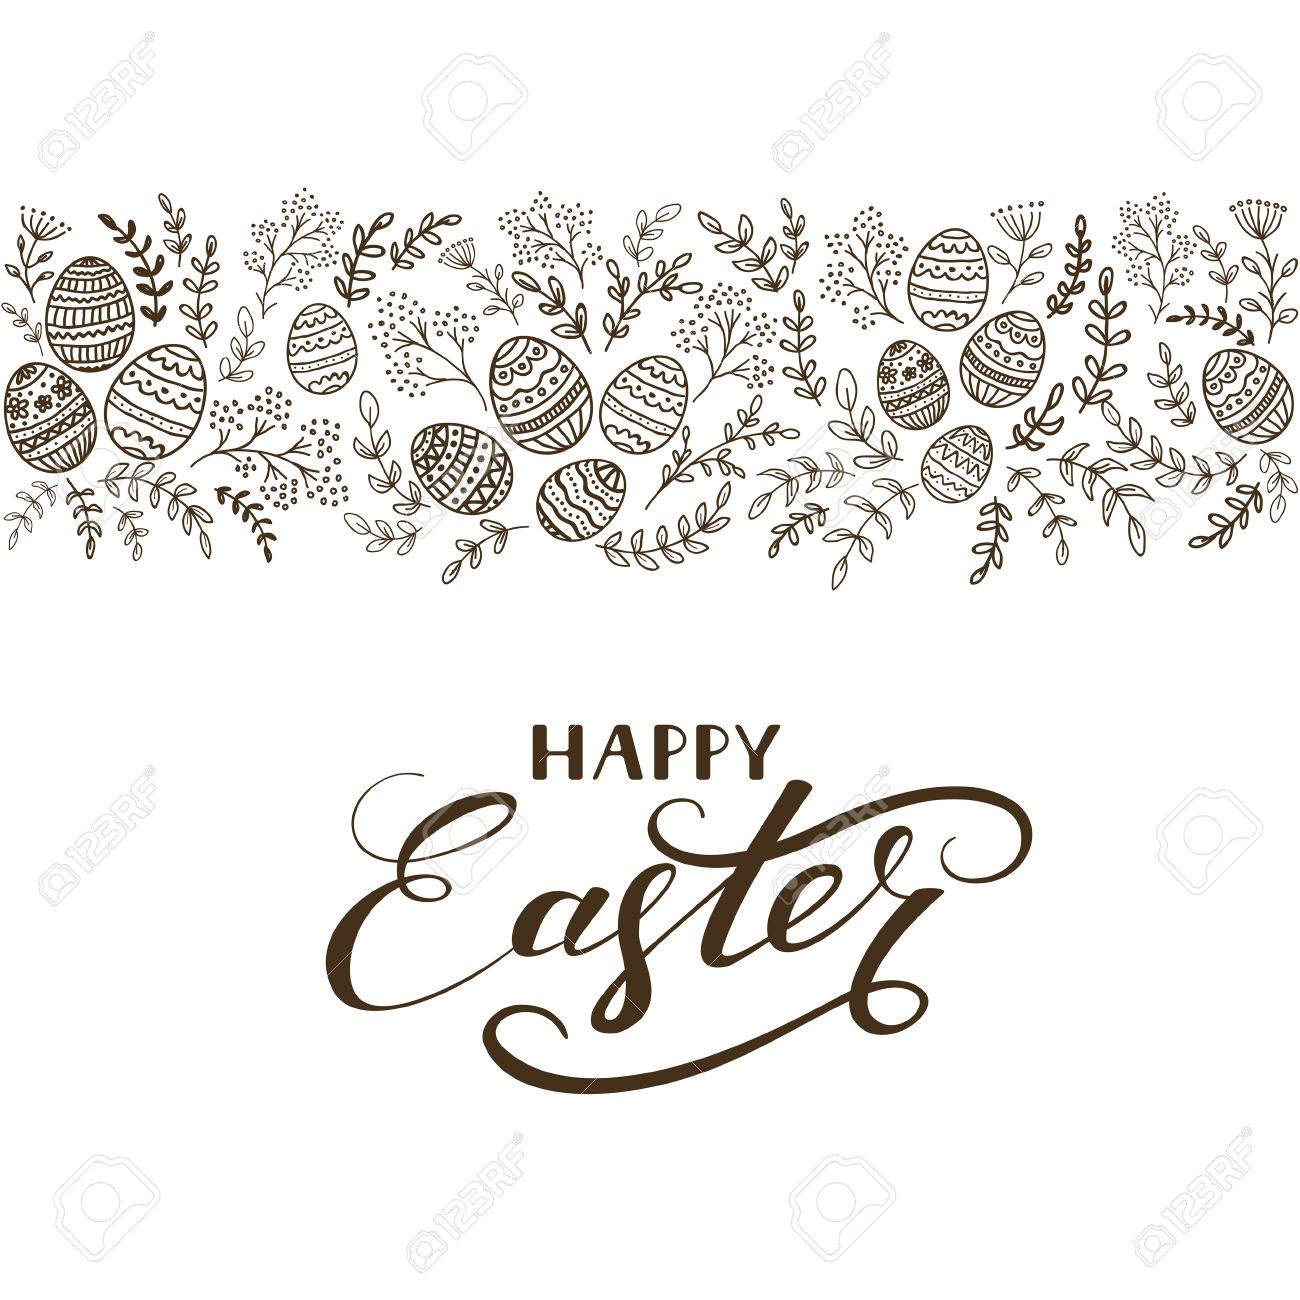 Black floral elements with eggs and lettering Happy Easter on white background, illustration. - 74733383